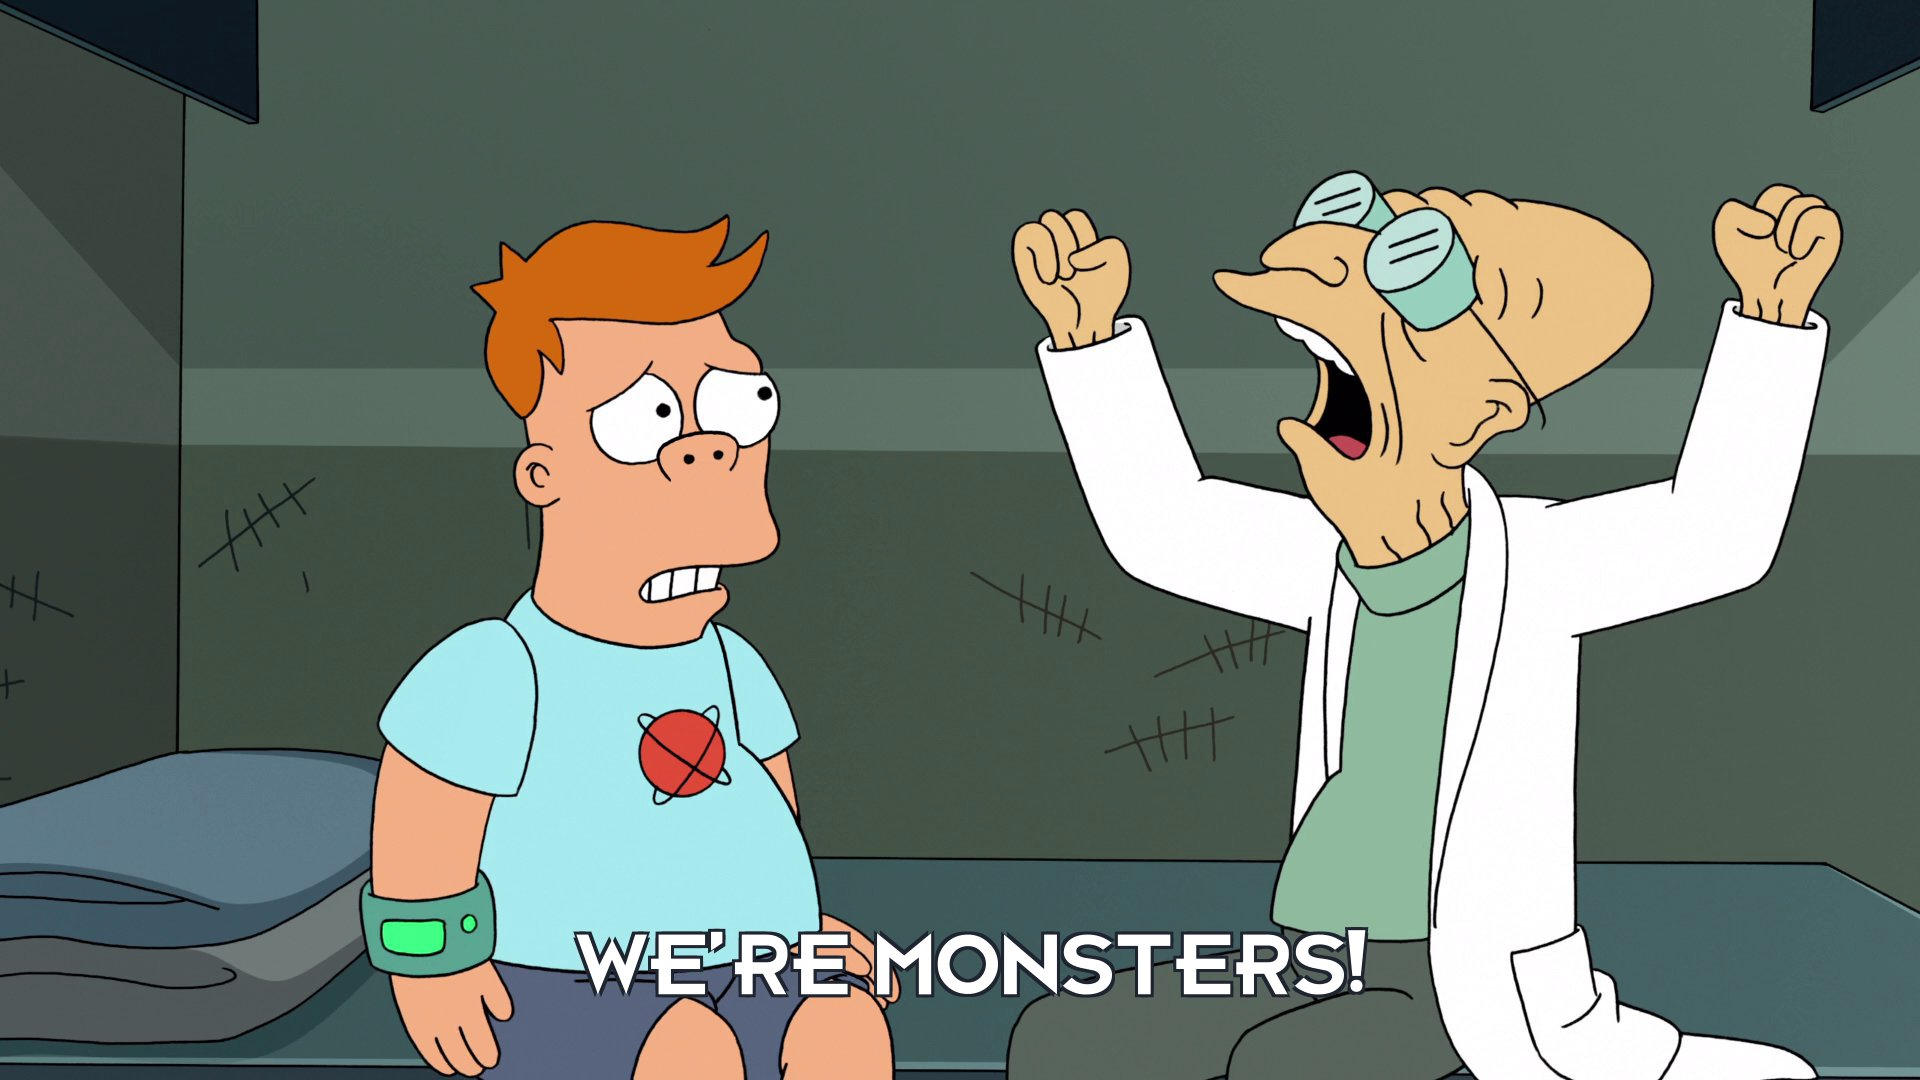 Prof Hubert J Farnsworth: We're monsters!